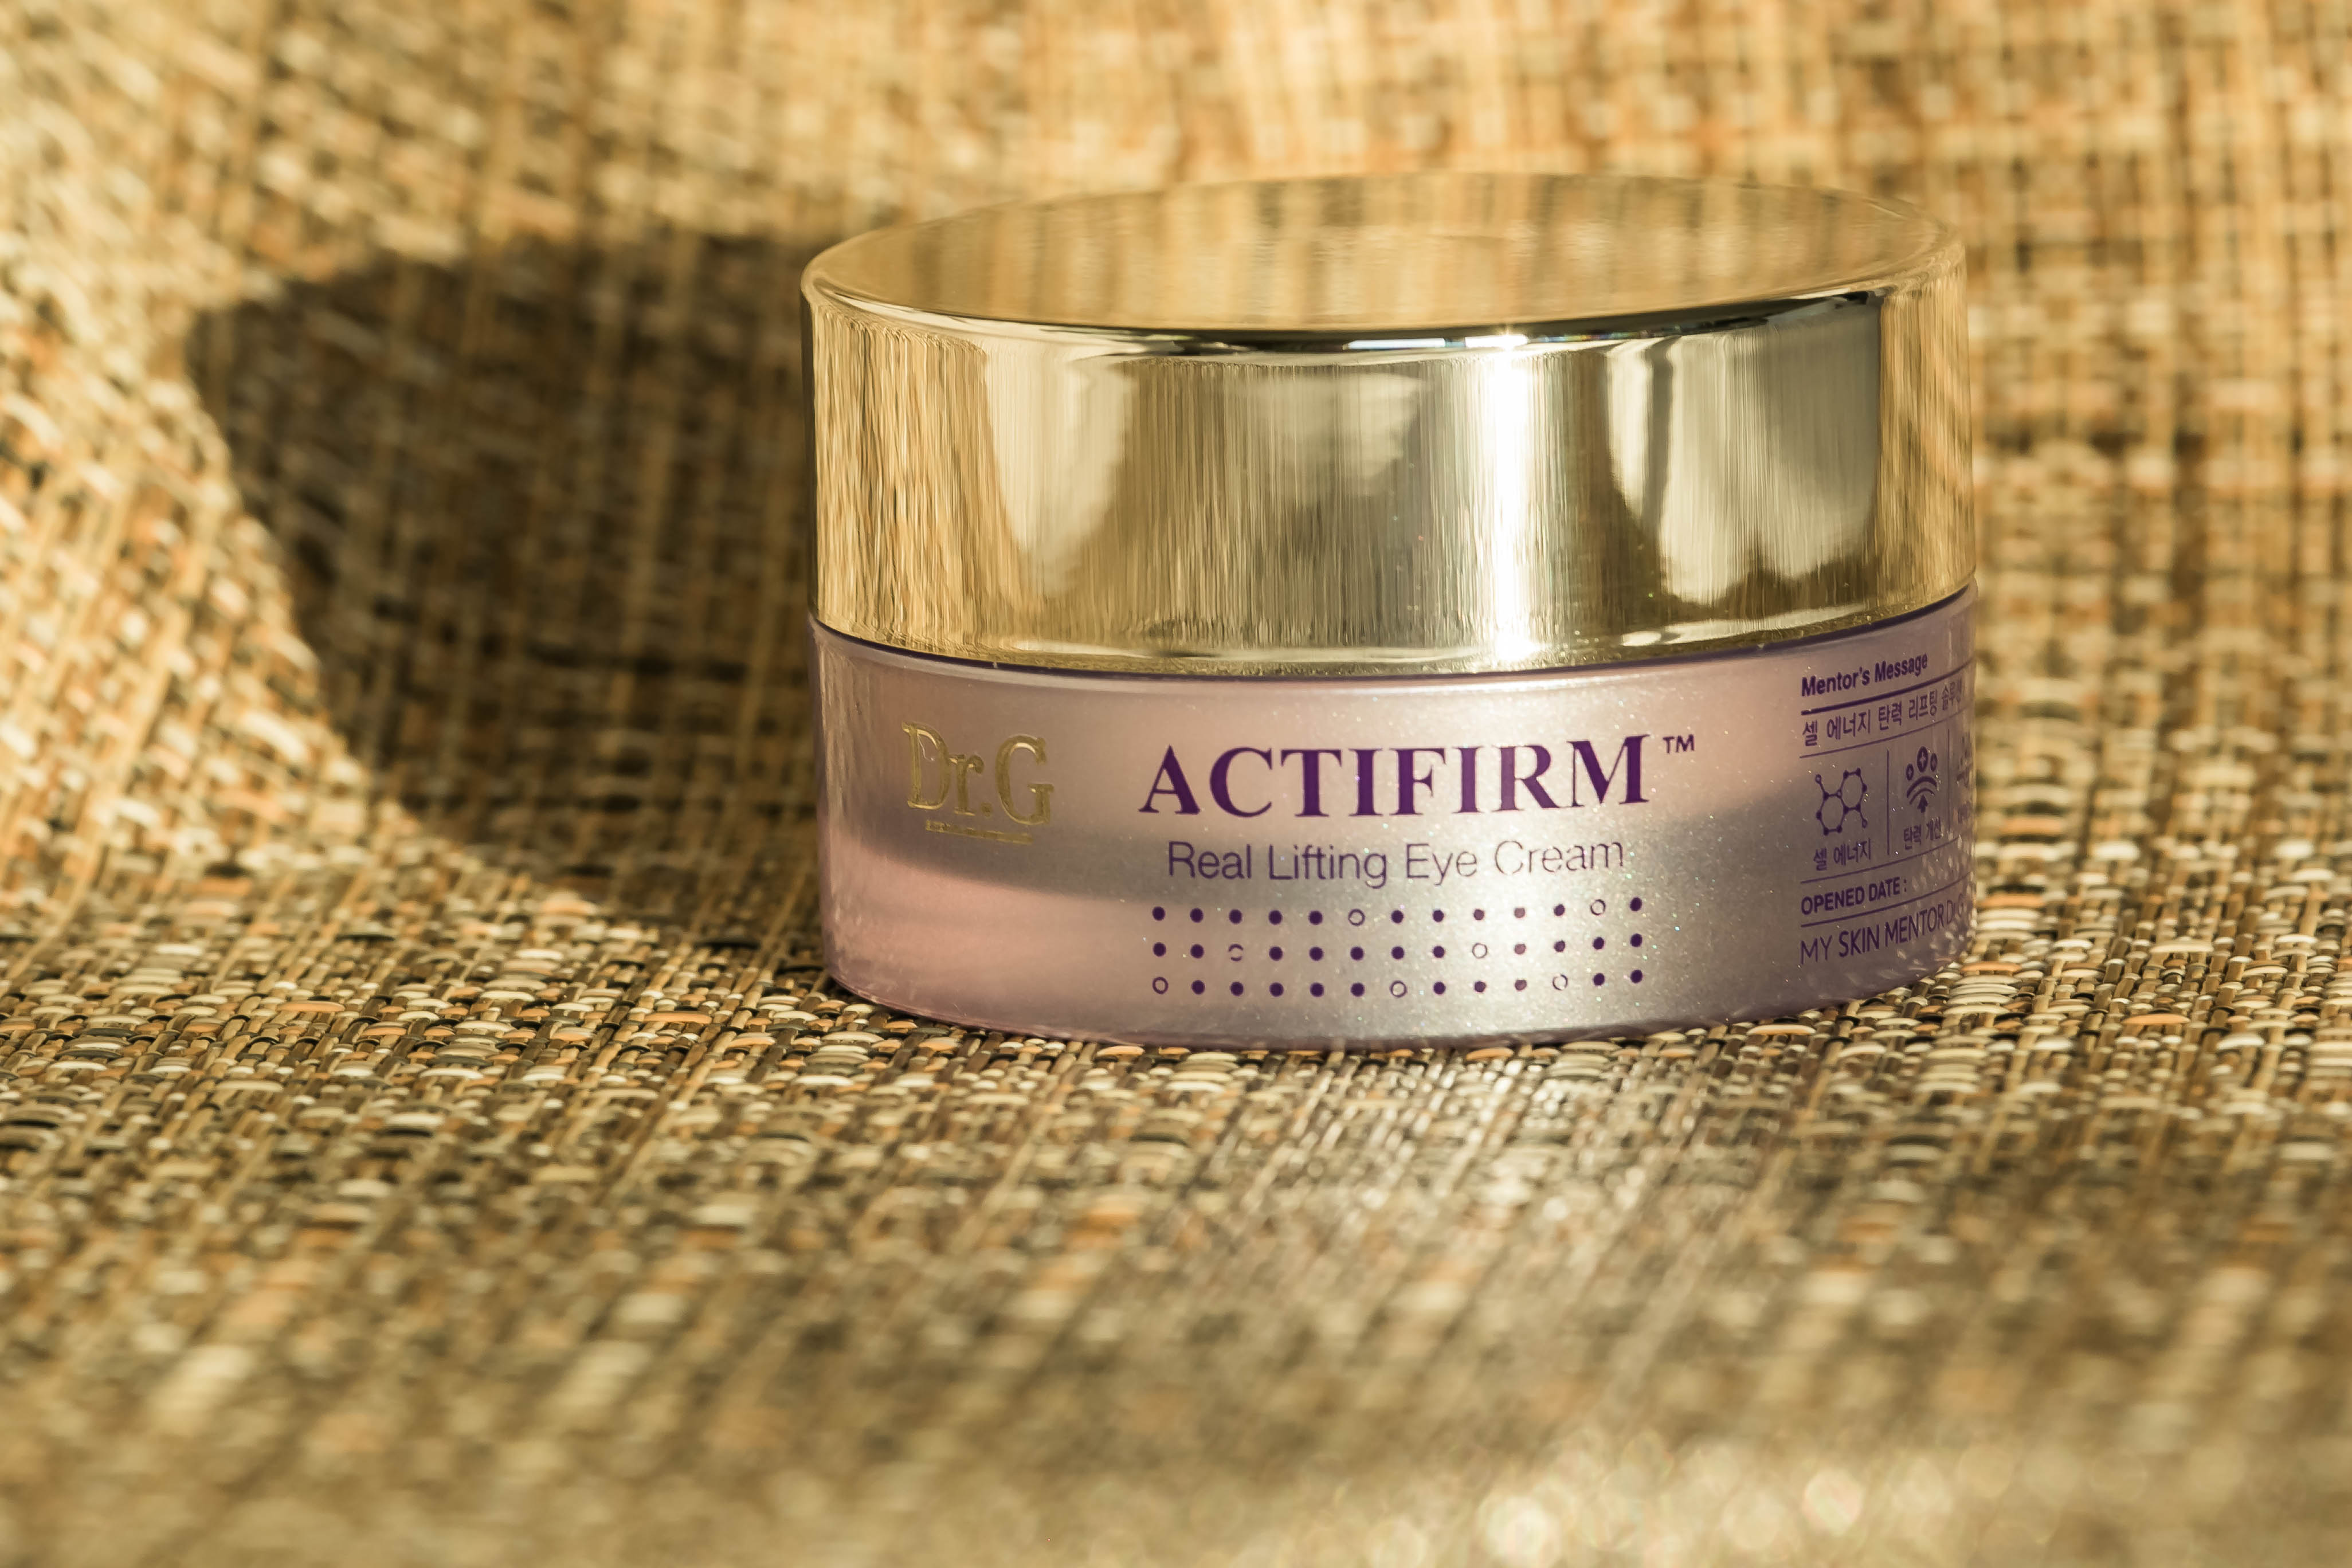 k-beauty; Dr. G ACtifirm Real Lifting Eye Cream